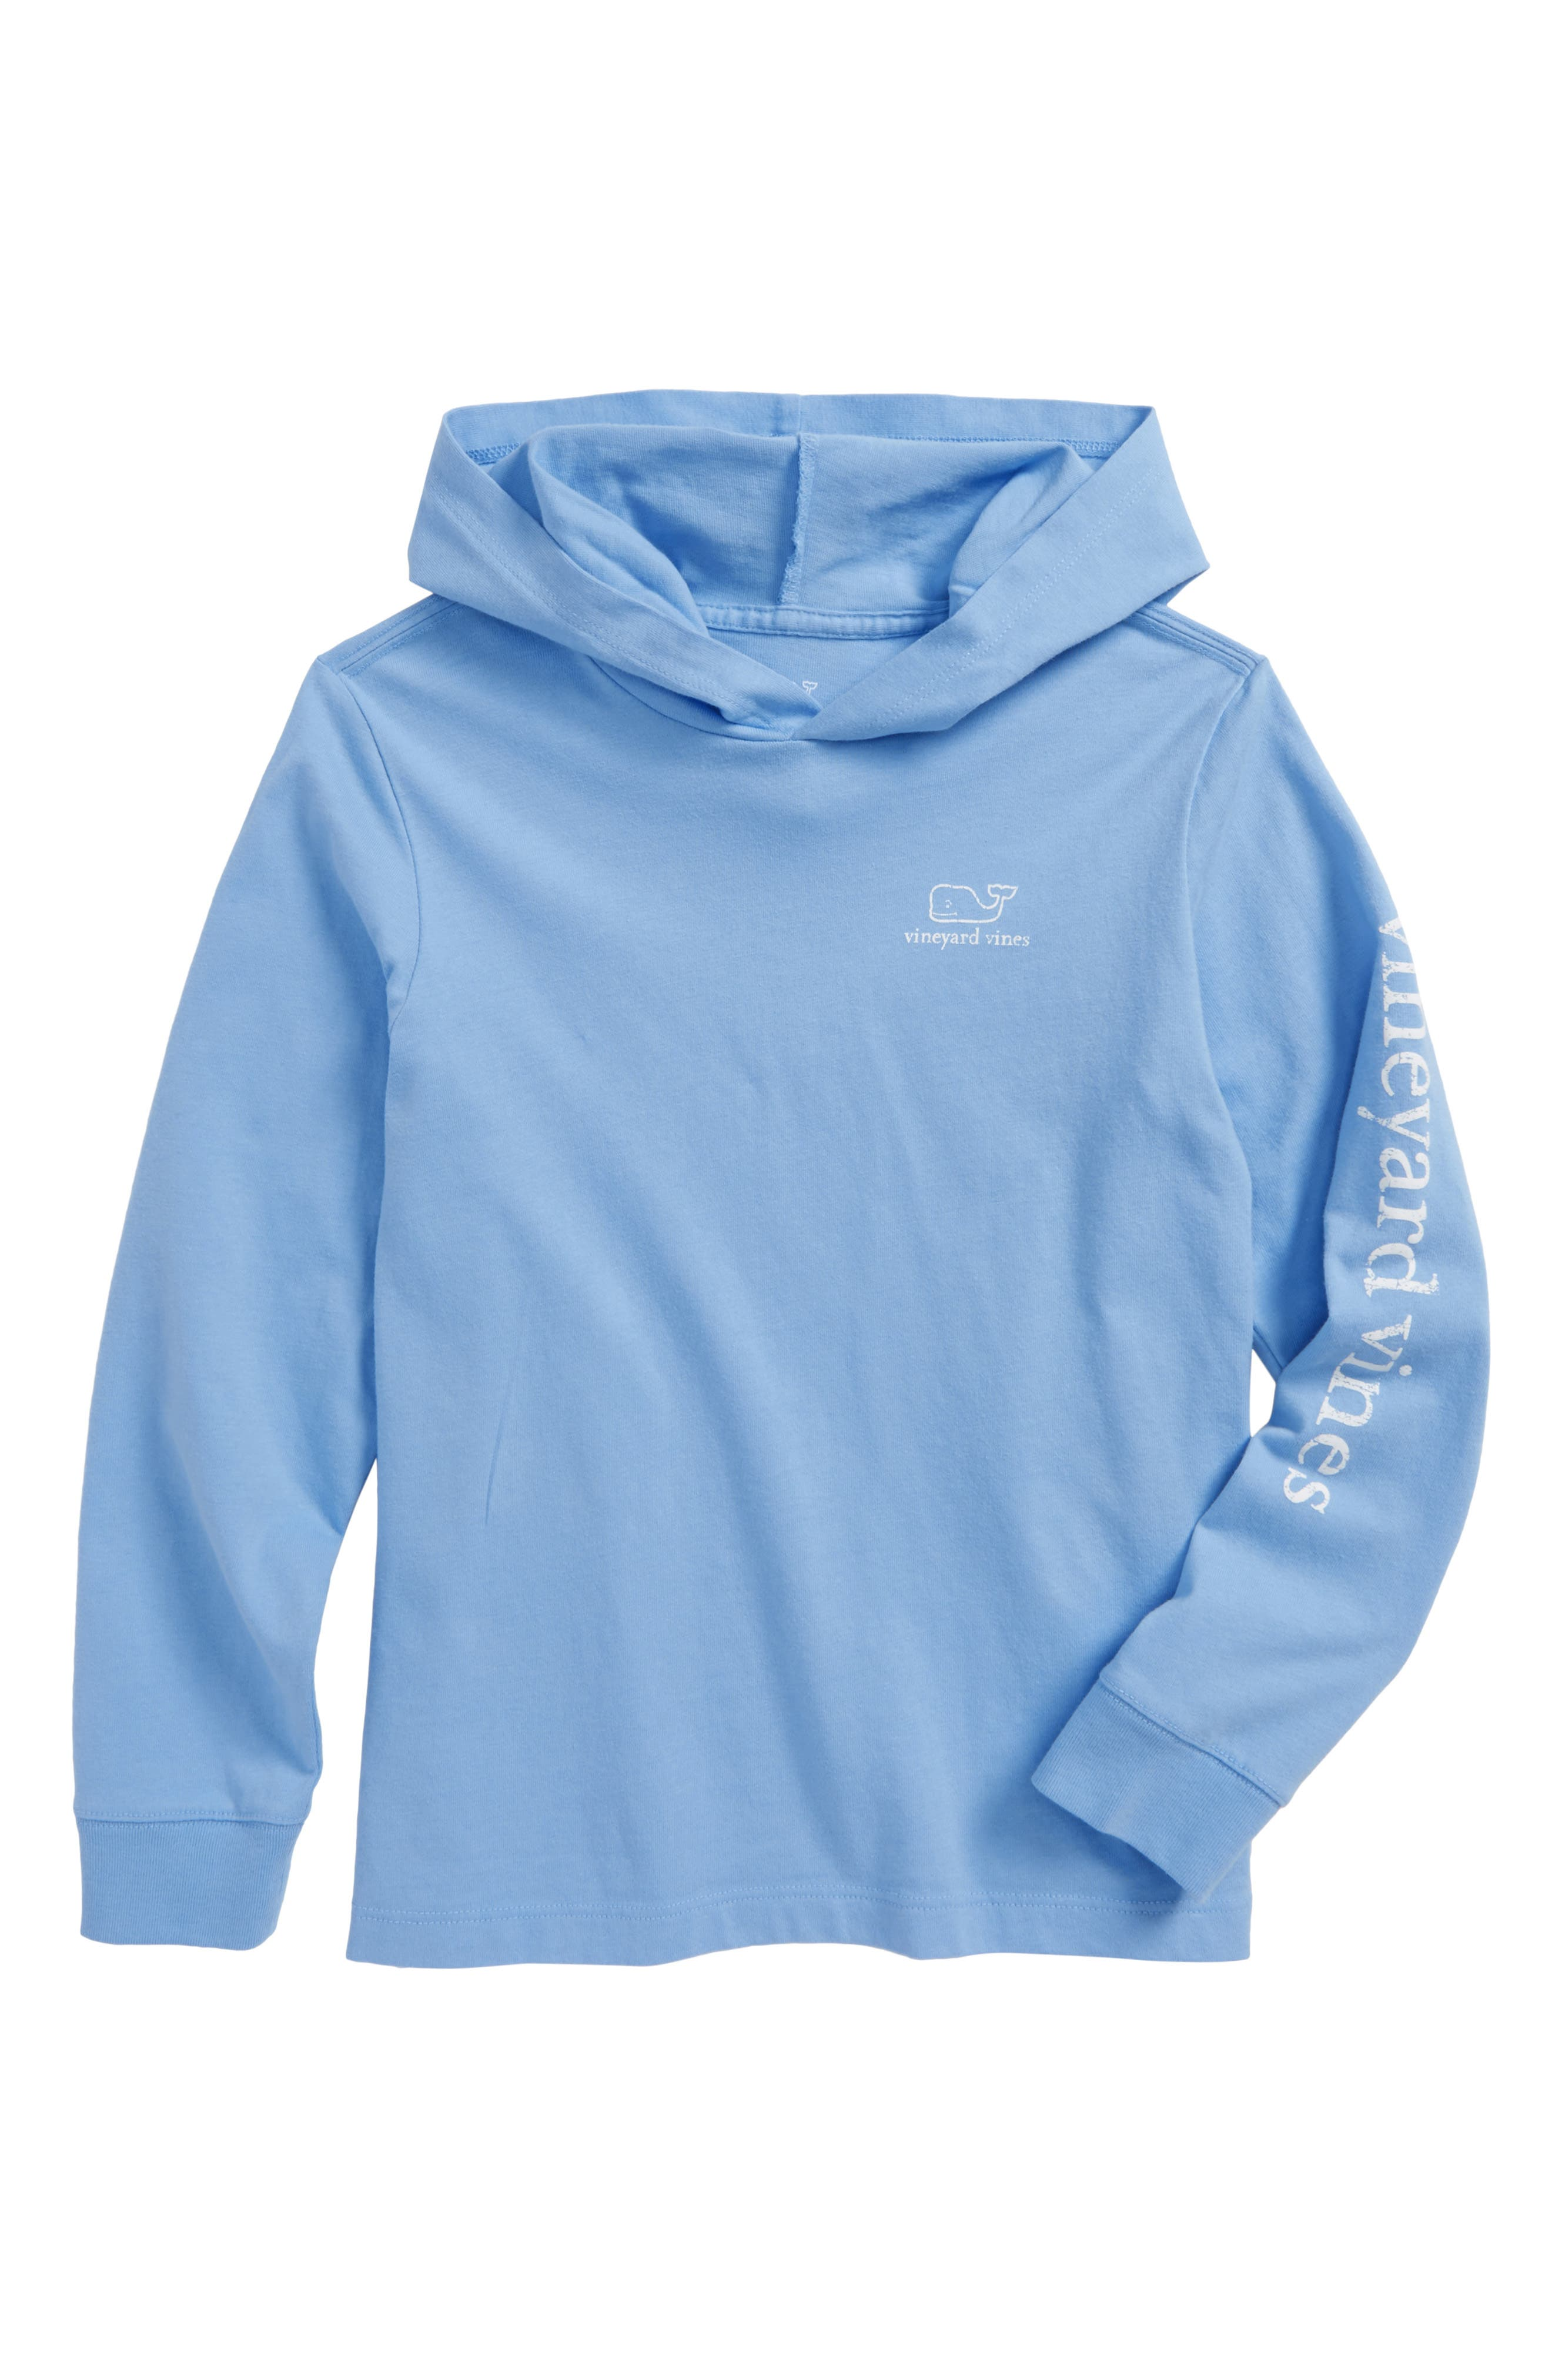 Performance Hooded Pullover,                             Main thumbnail 1, color,                             484